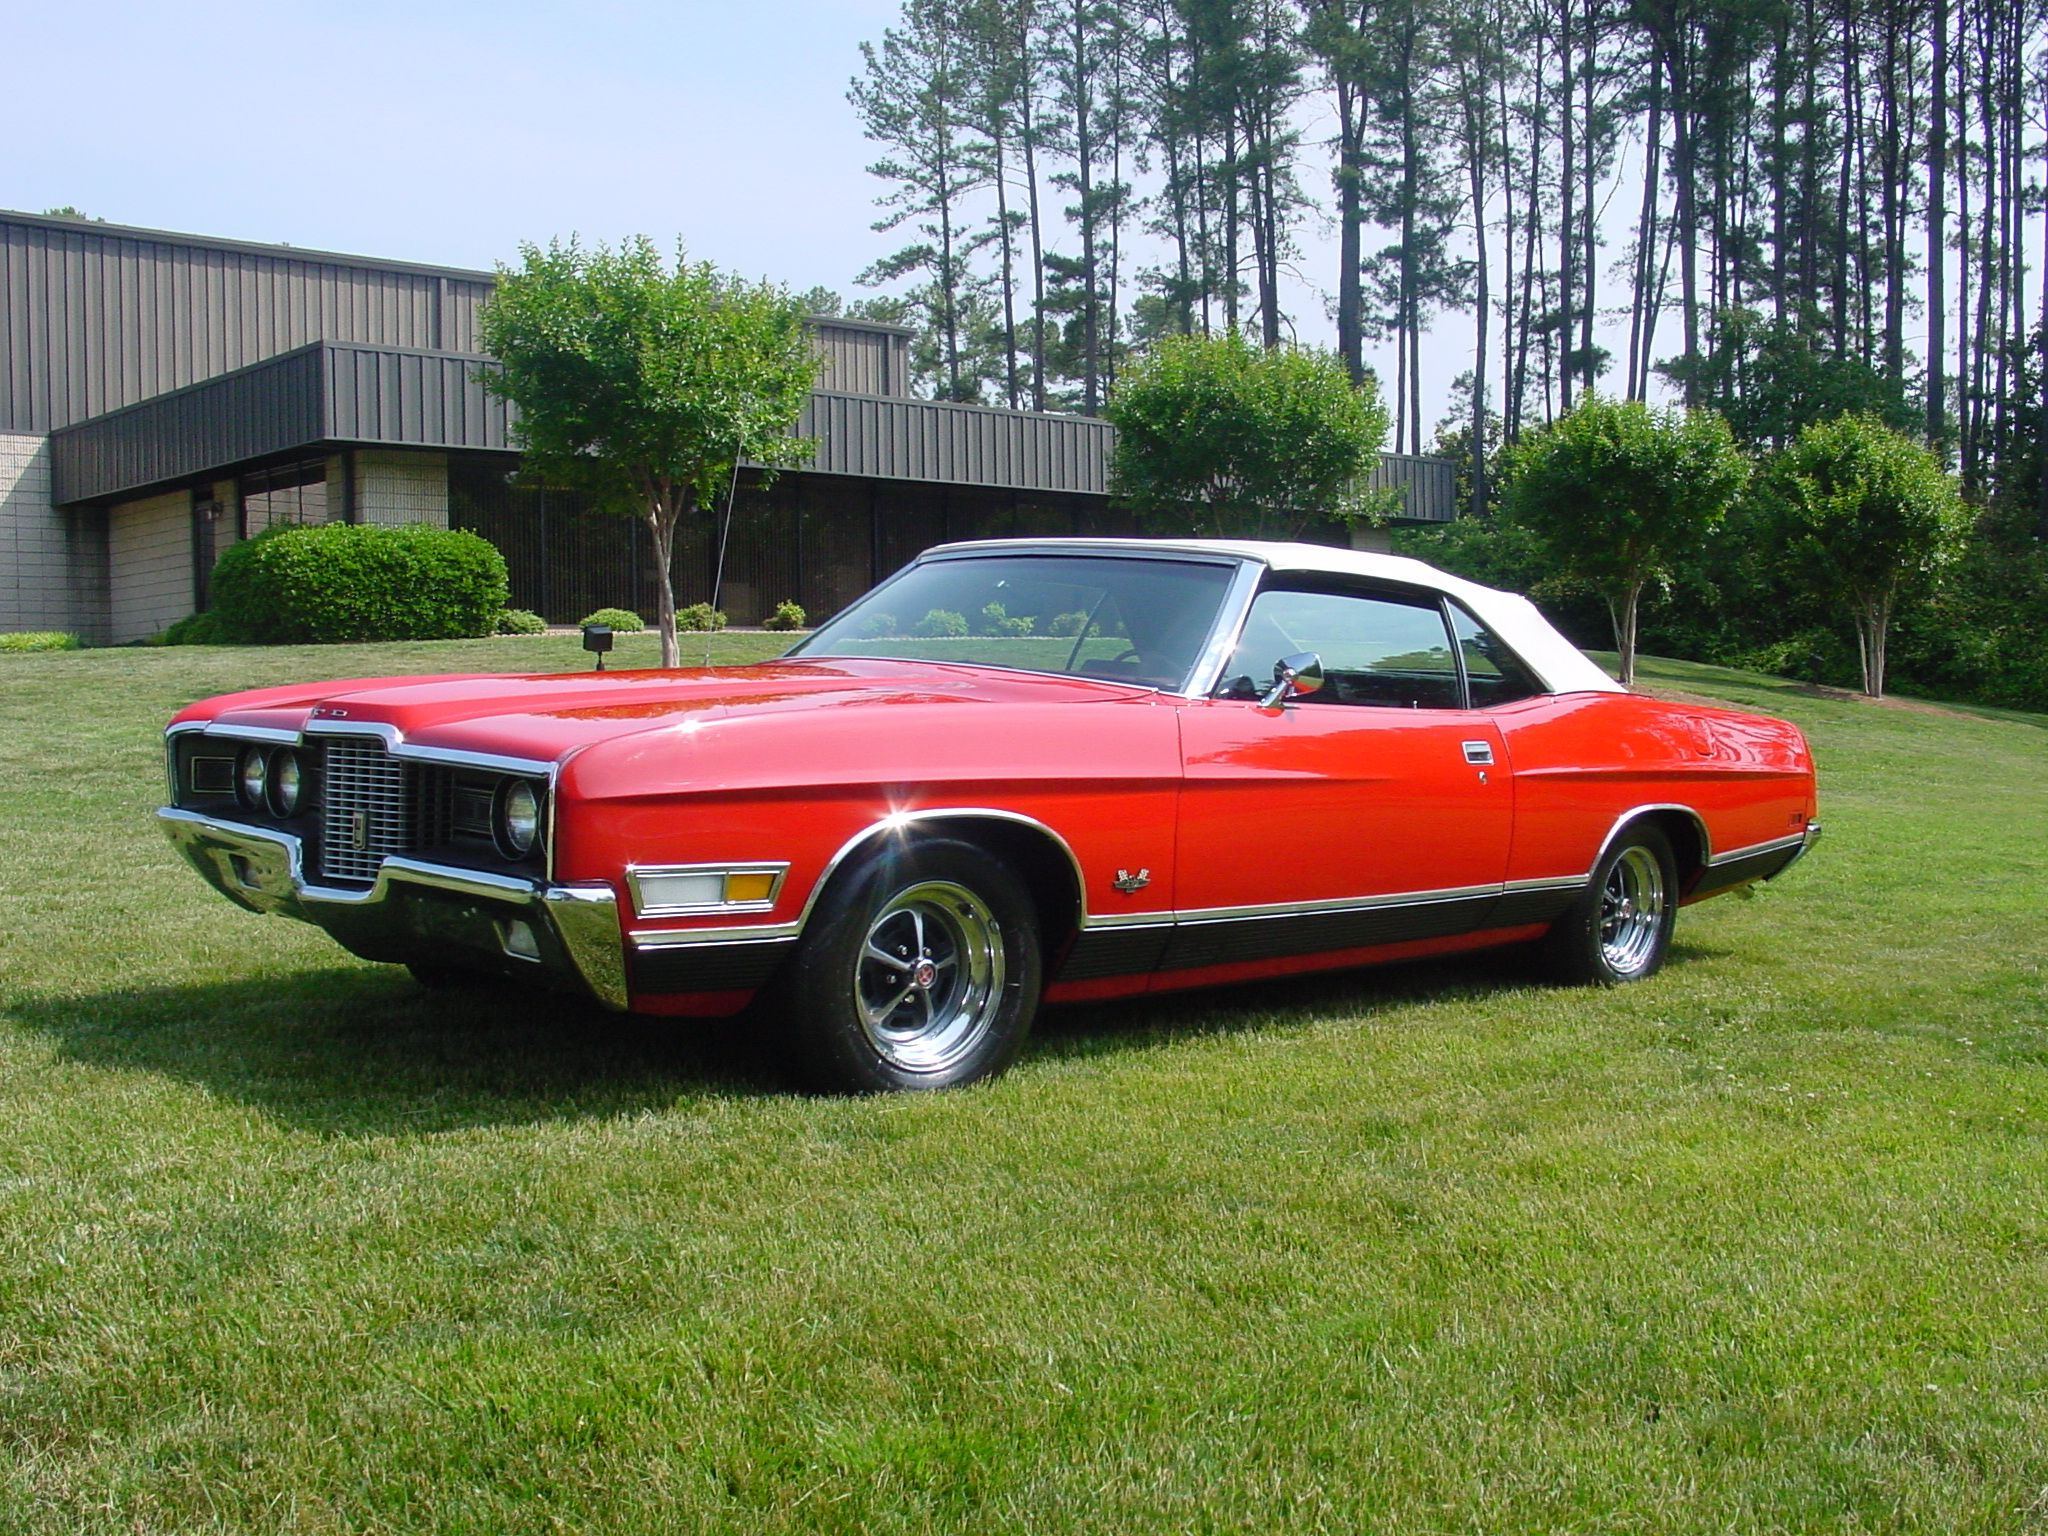 71 Ford Ltd | cars | Pinterest | Ford, Cars and Ford motor company